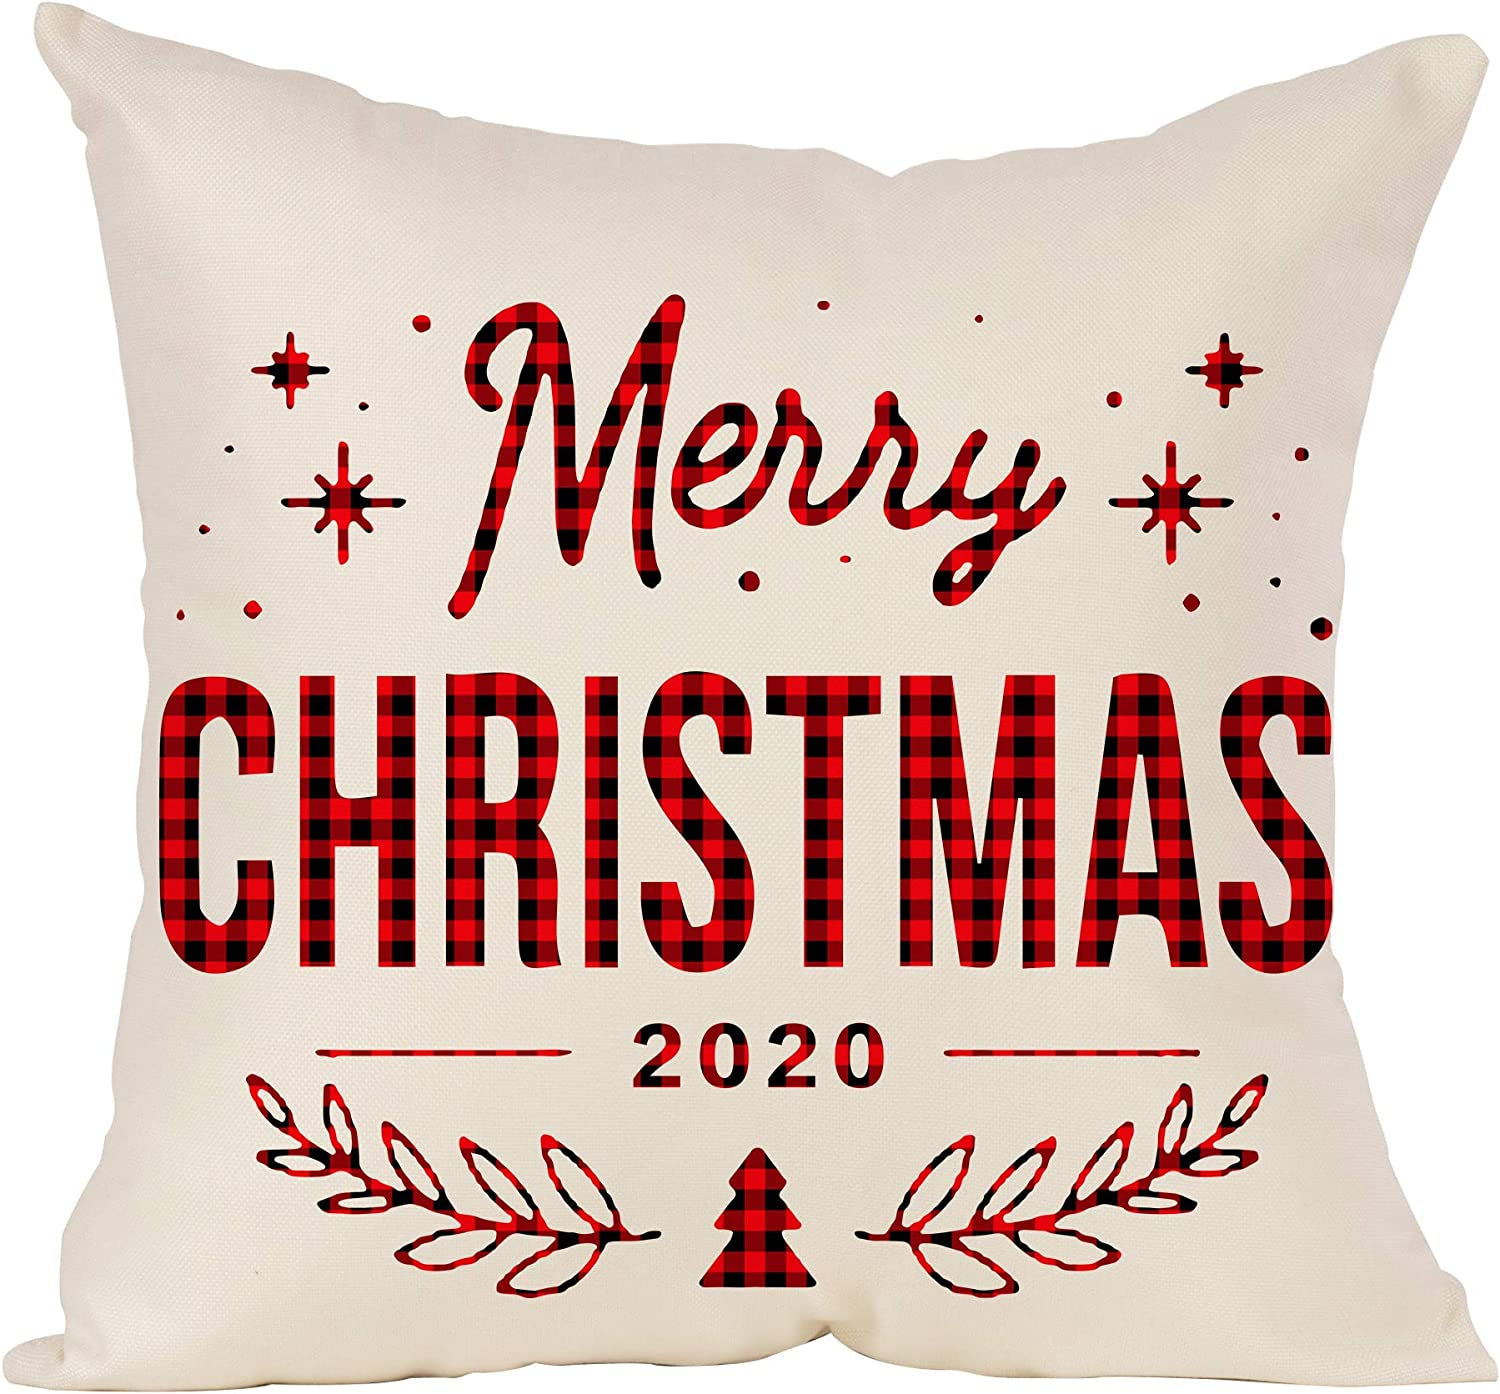 Ditmeer Merry Christmas 2020 Throw Pillow Cover 18X18 Warmy Décor House Sofa Couch Indoor Garden Cushion Party Case Red Christmas Pillow Cover Set of 1